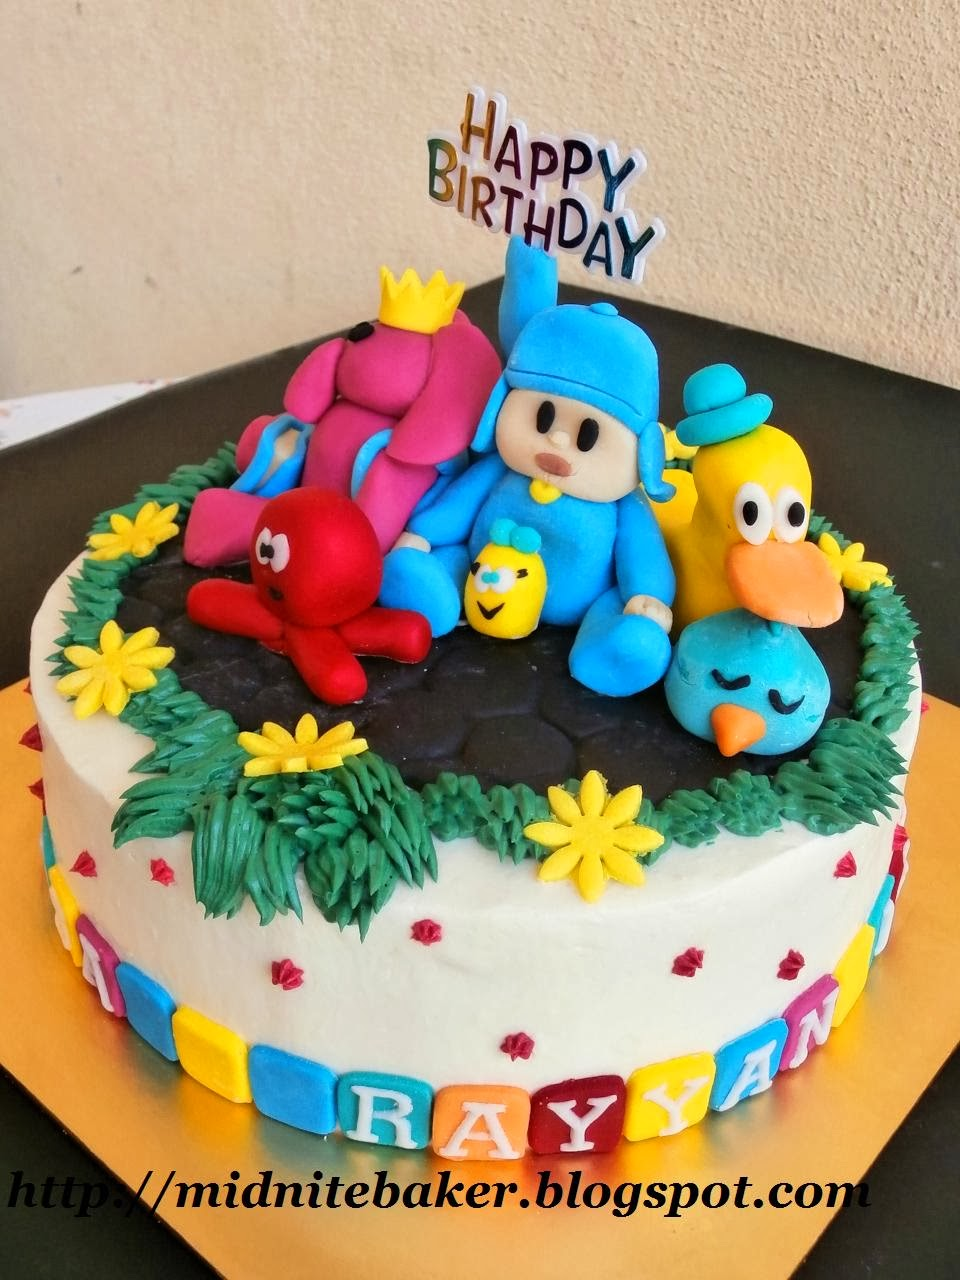 BUTTERCREAM CAKE WITH FIGURINE